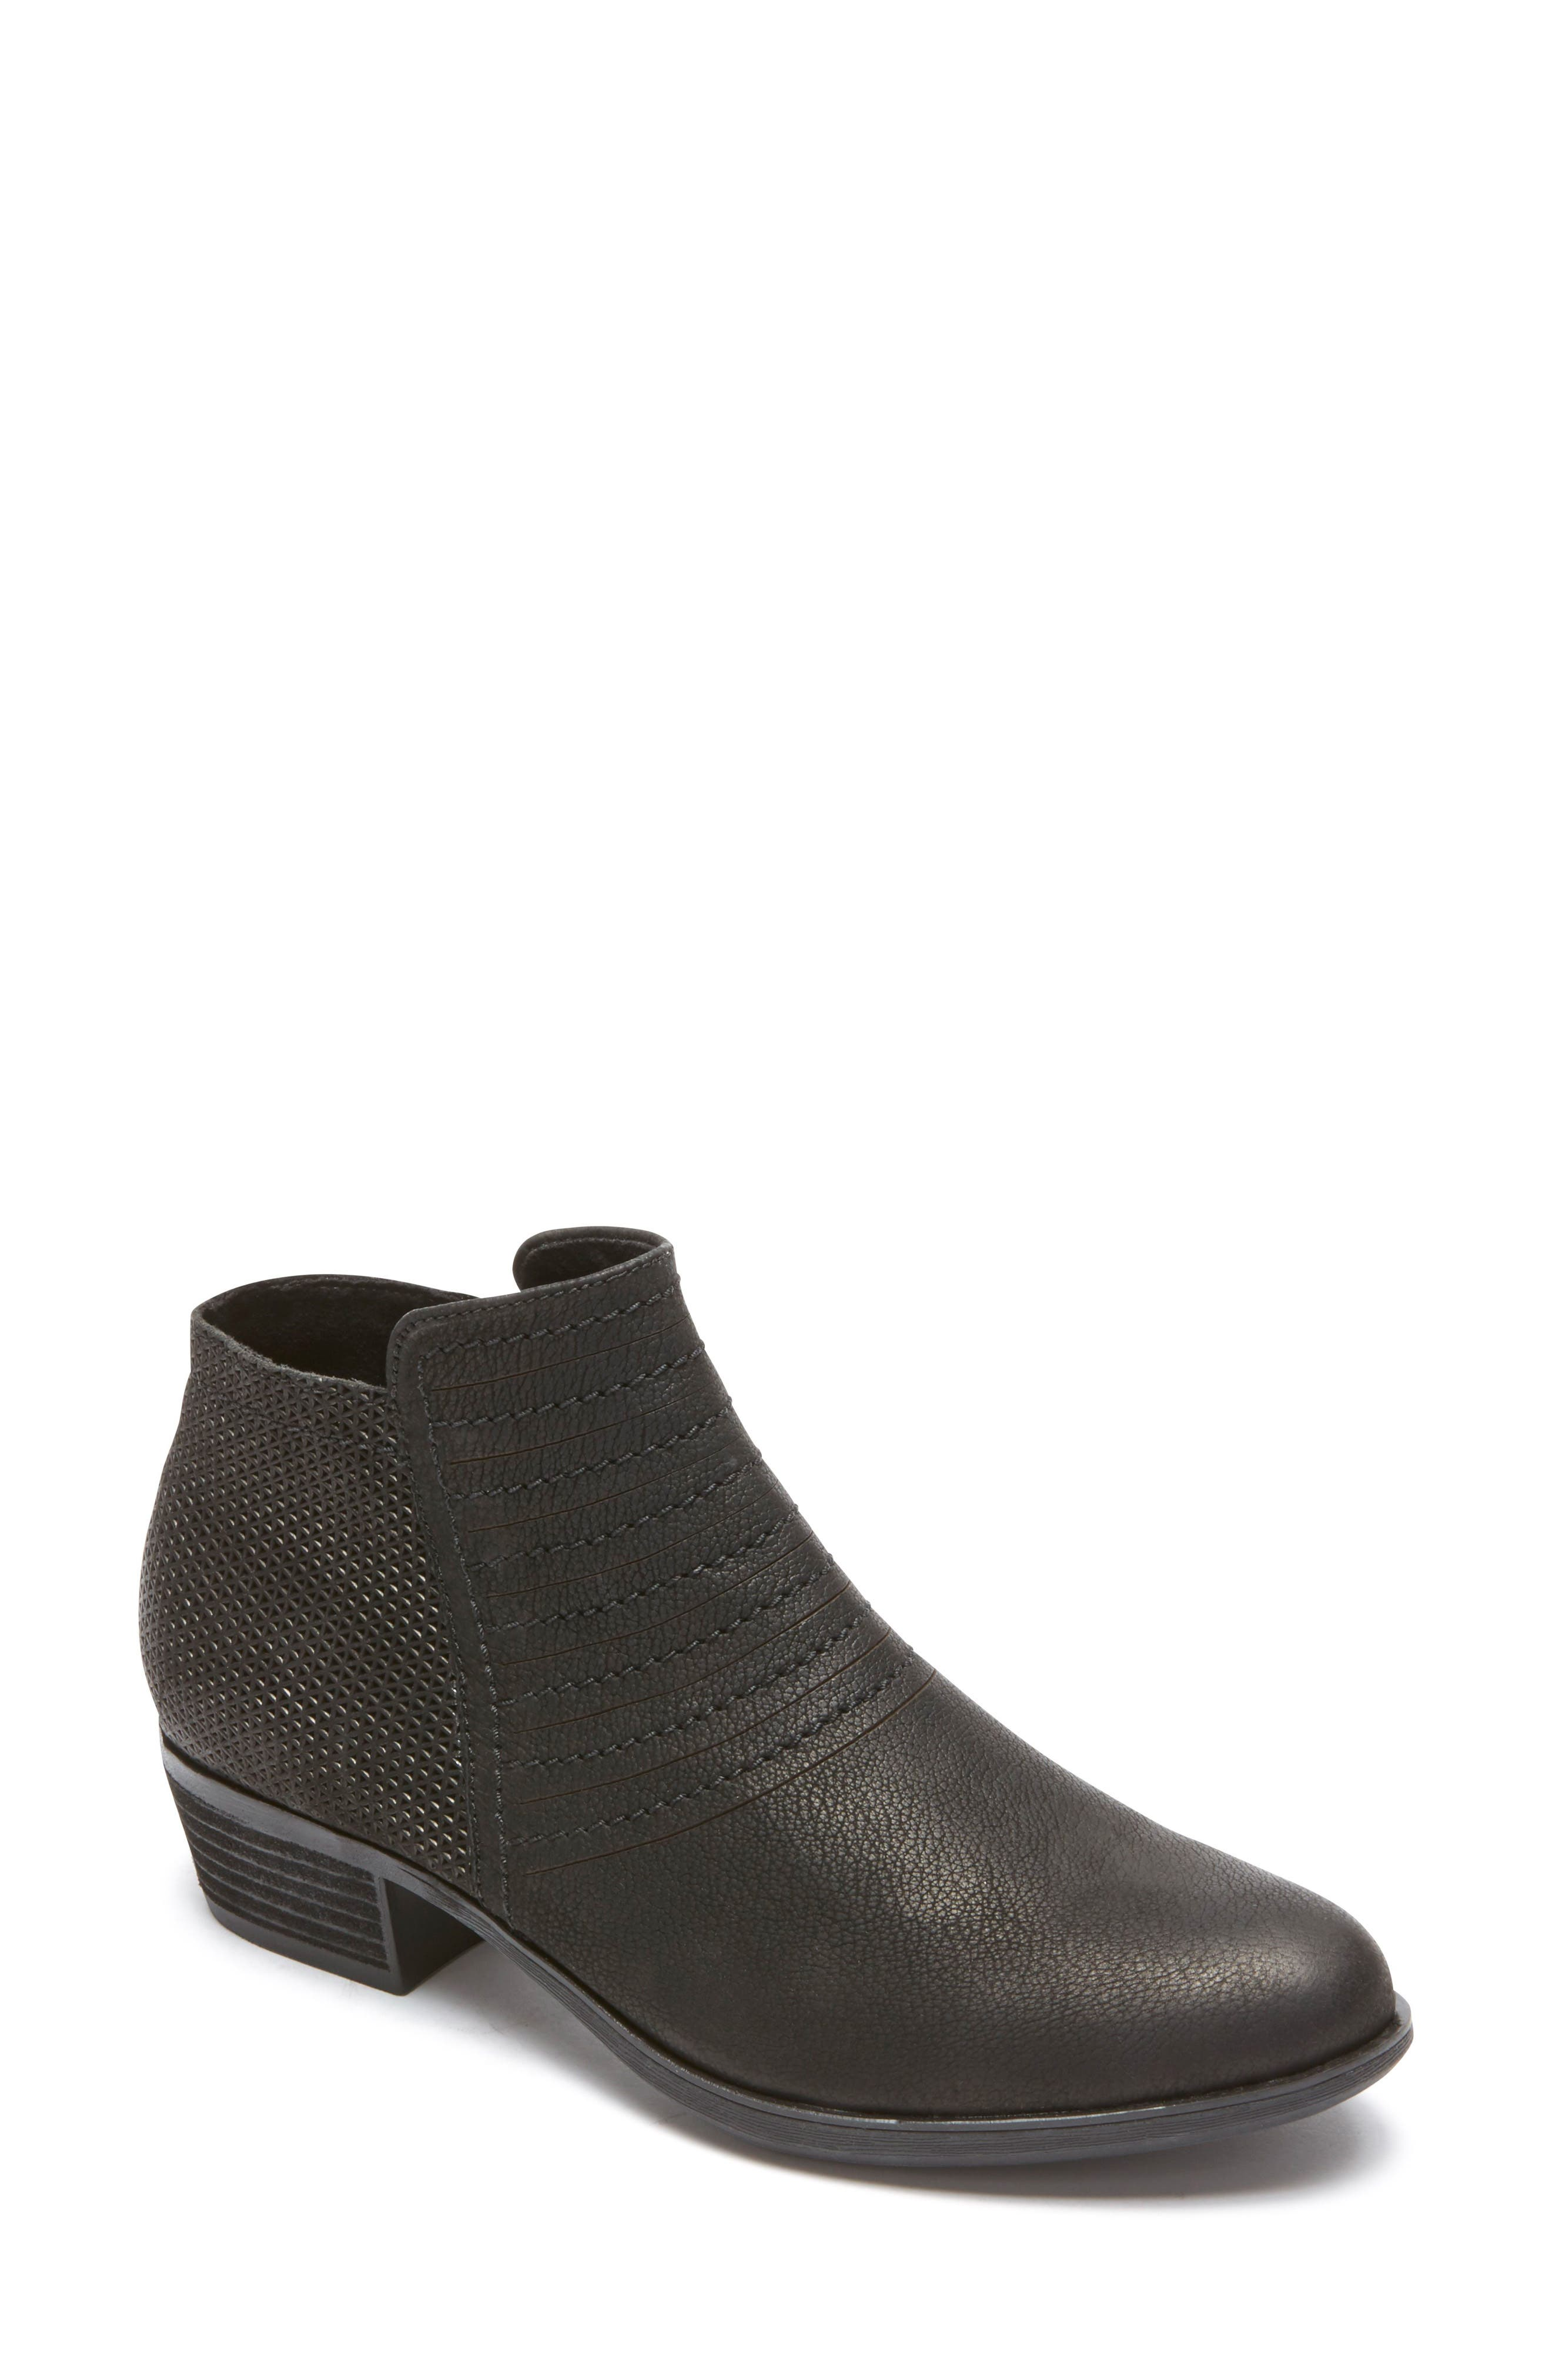 ROCKPORT,                             Vanna Strappy Bootie,                             Main thumbnail 1, color,                             BLACK NUBUCK